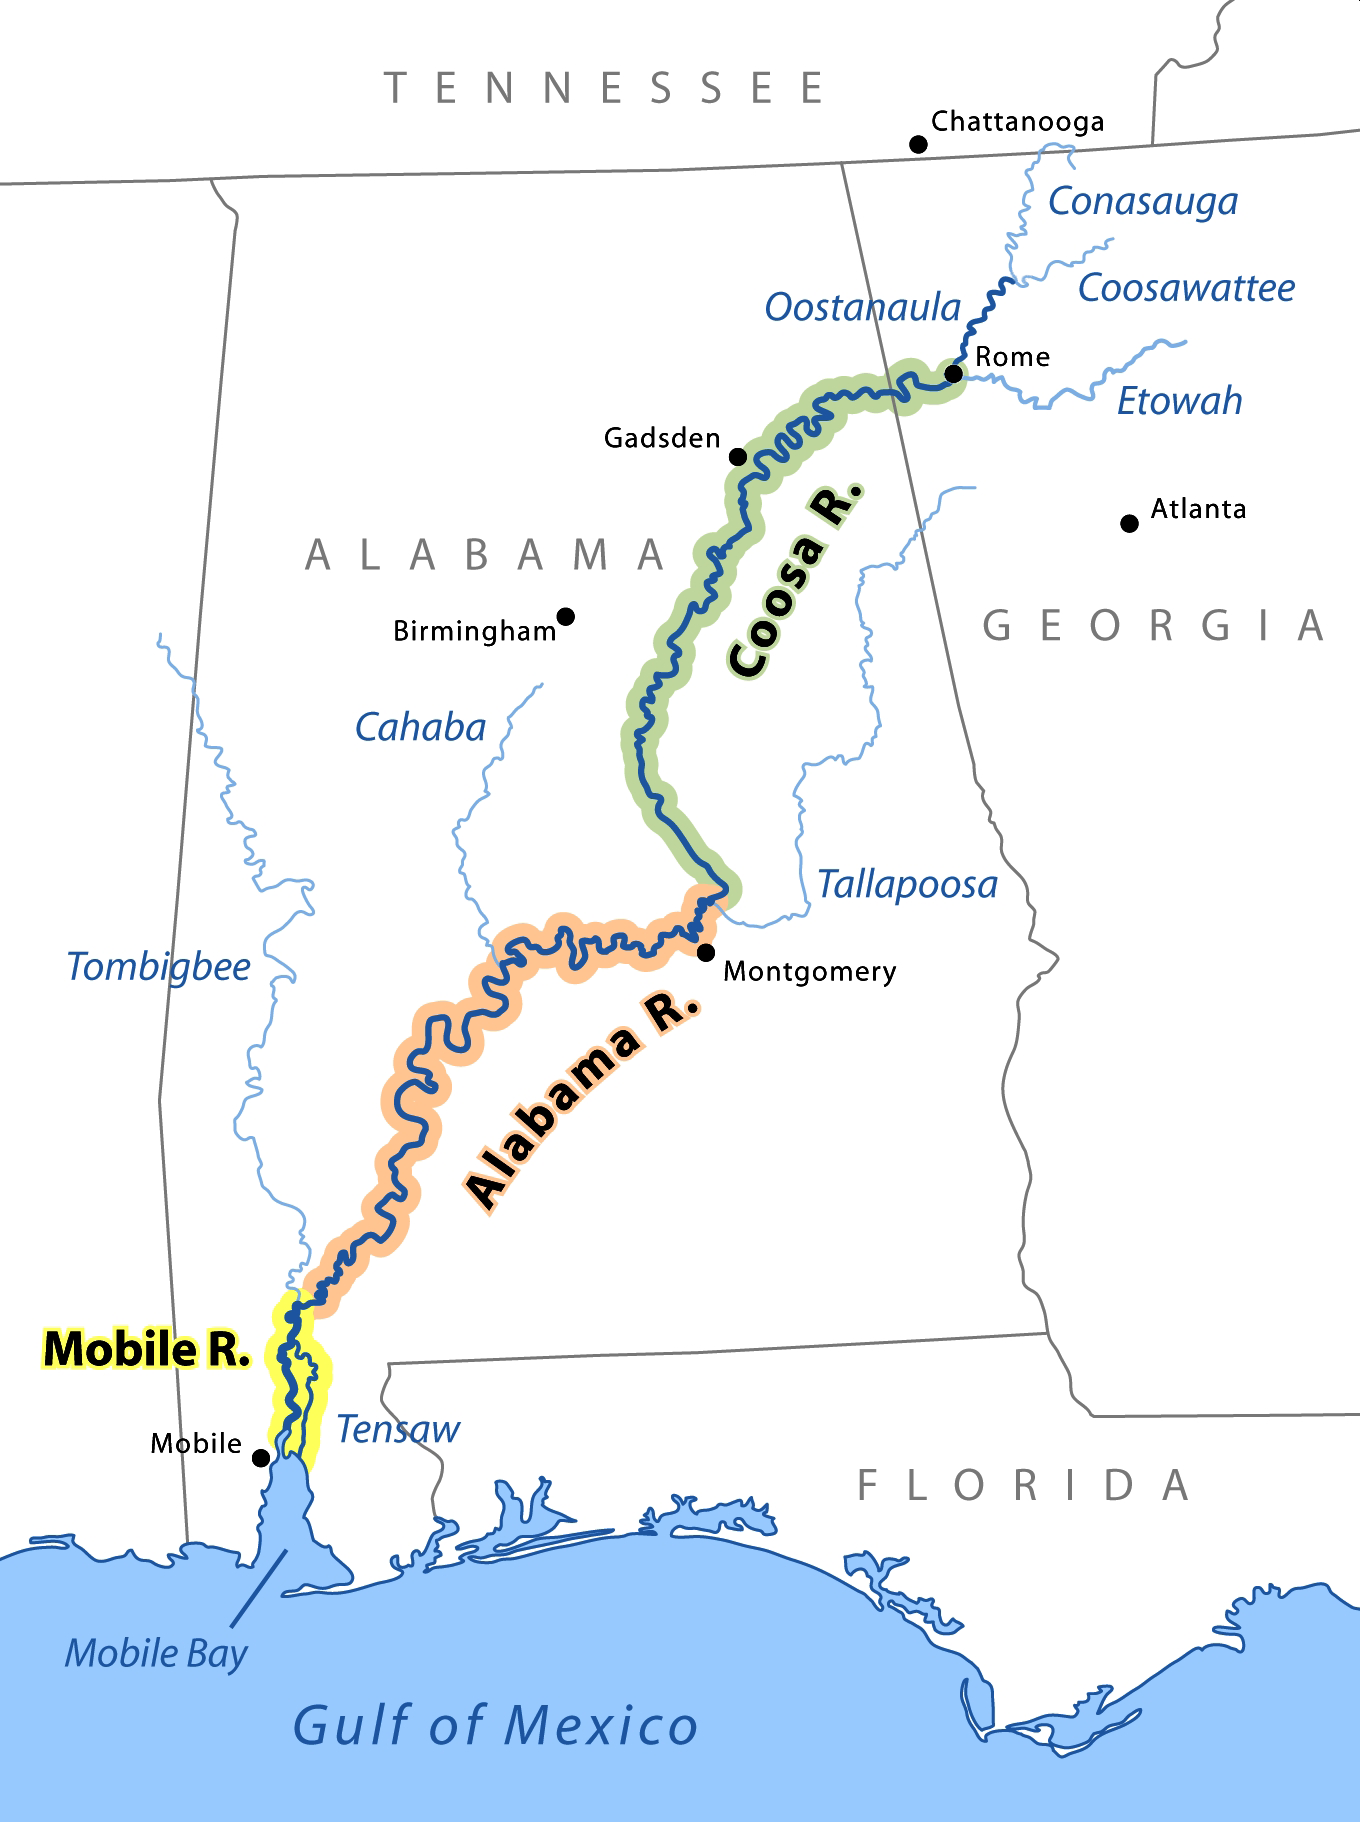 MAP OF GADSDEN AL AND THE COOSA RIVER Google Search ALABAMA - Alabama on the us map